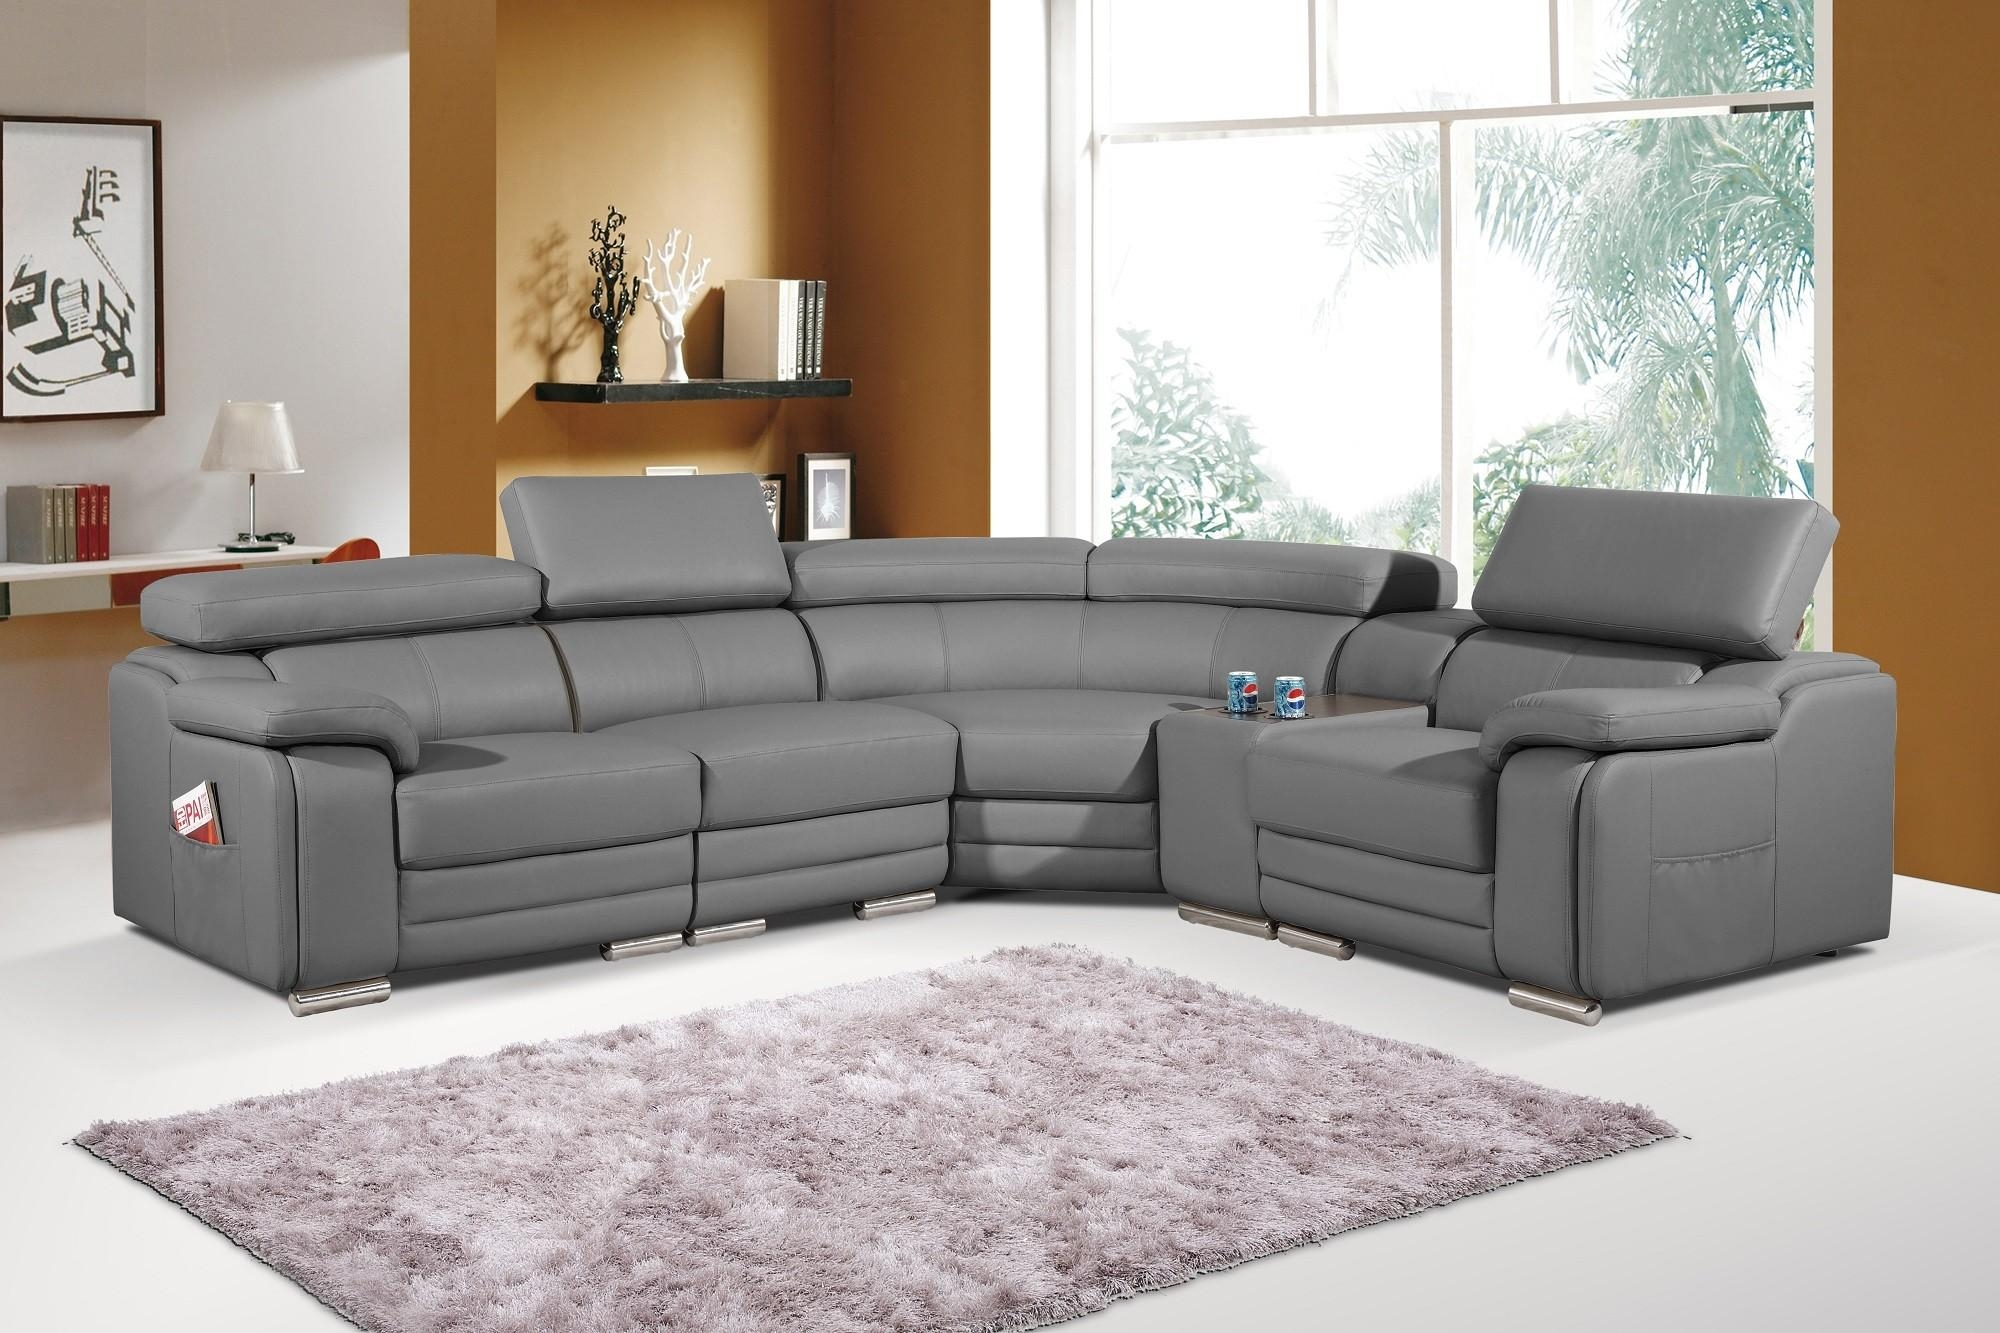 Leather Corner Sofa Grey | Tehranmix Decoration Inside Charcoal Grey Leather Sofas (View 18 of 20)